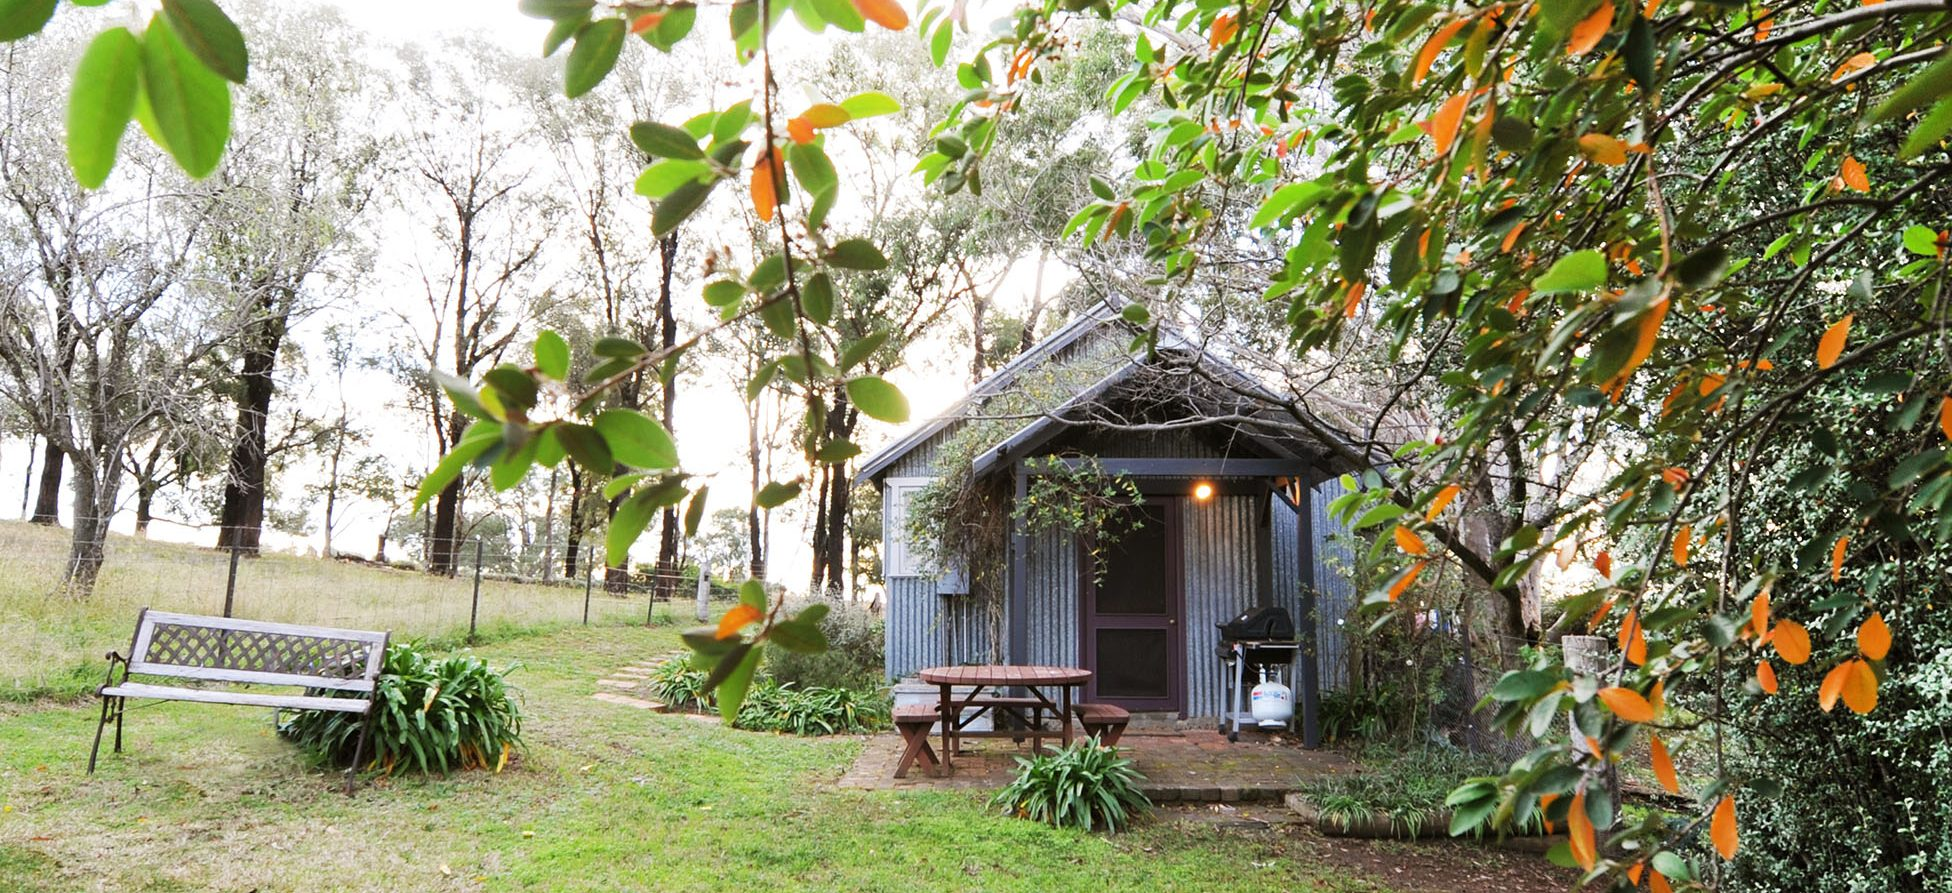 Home Away from Home - Mudgee Region